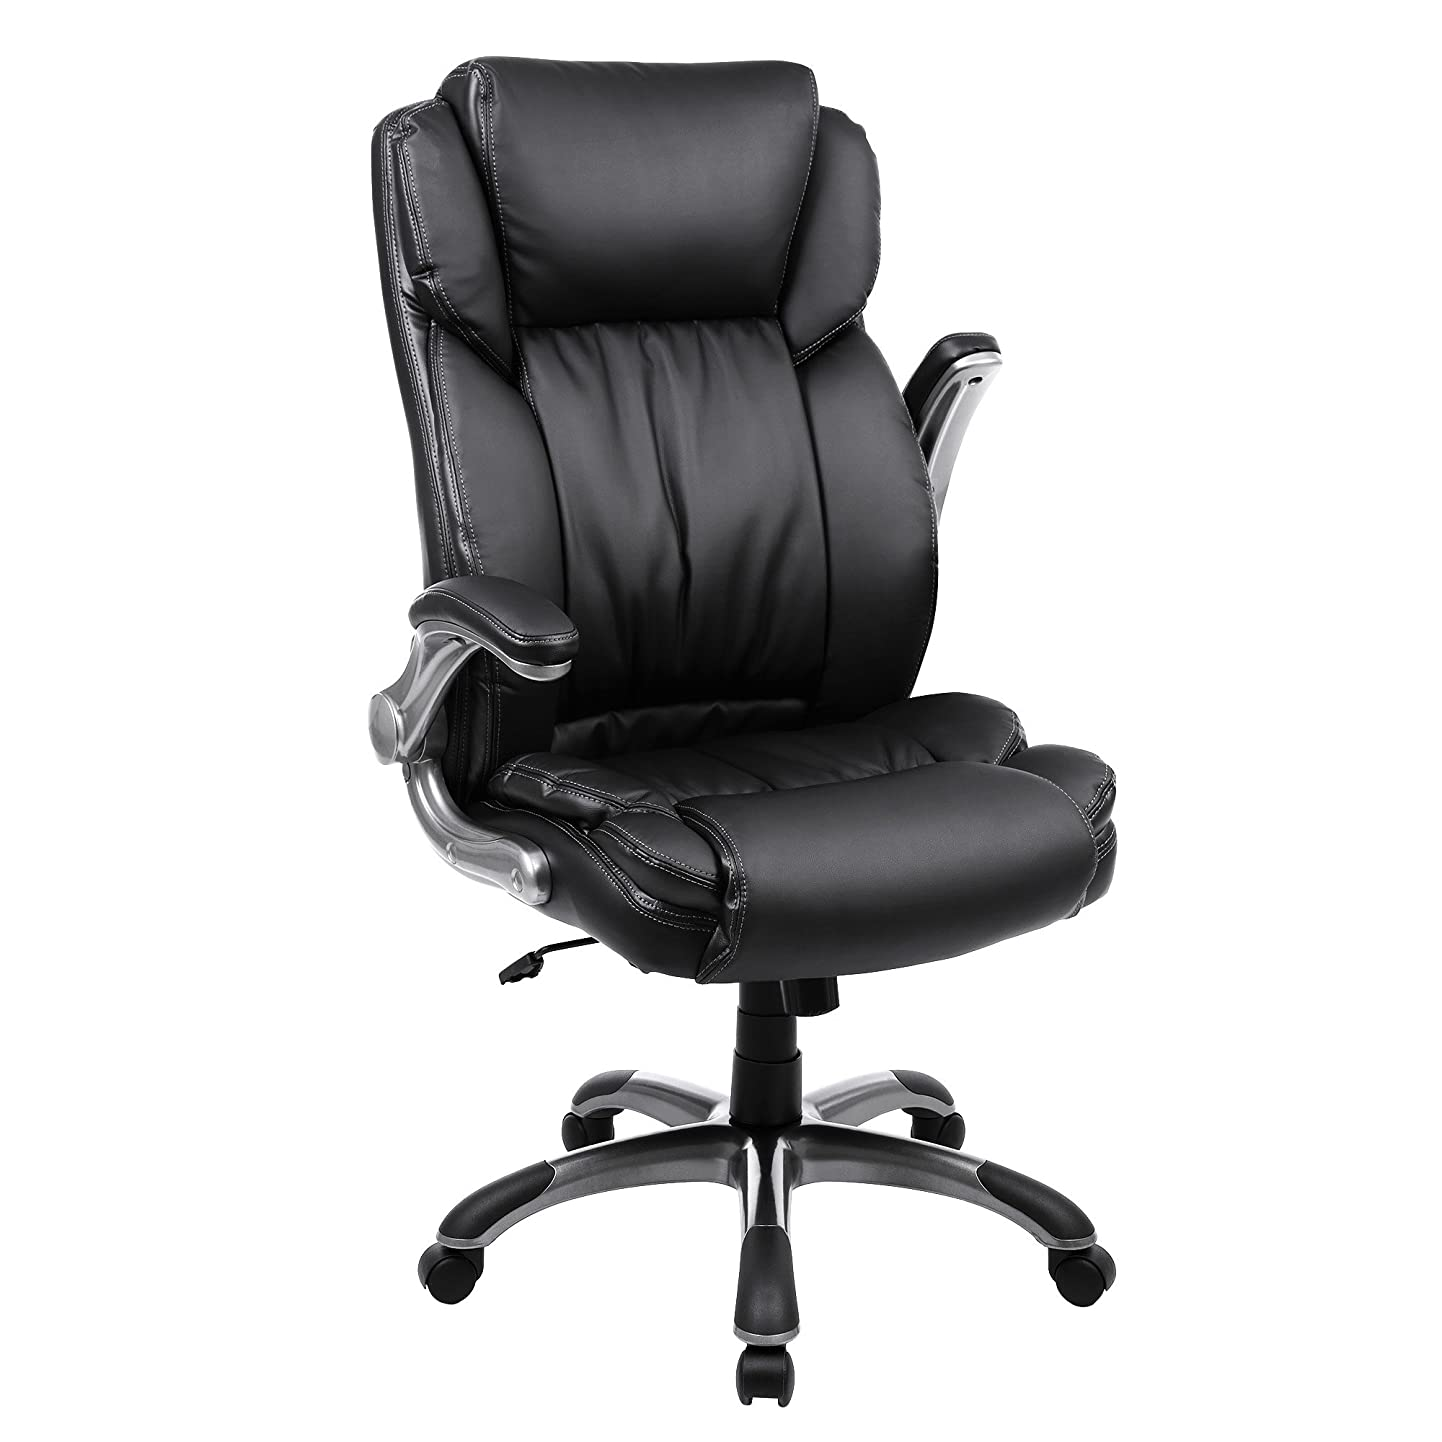 SONGMICS Extra Big Office Chair High Back Executive Chair with Thick Seat and Tilt Function Black UOBG94BK reiechxtmel4